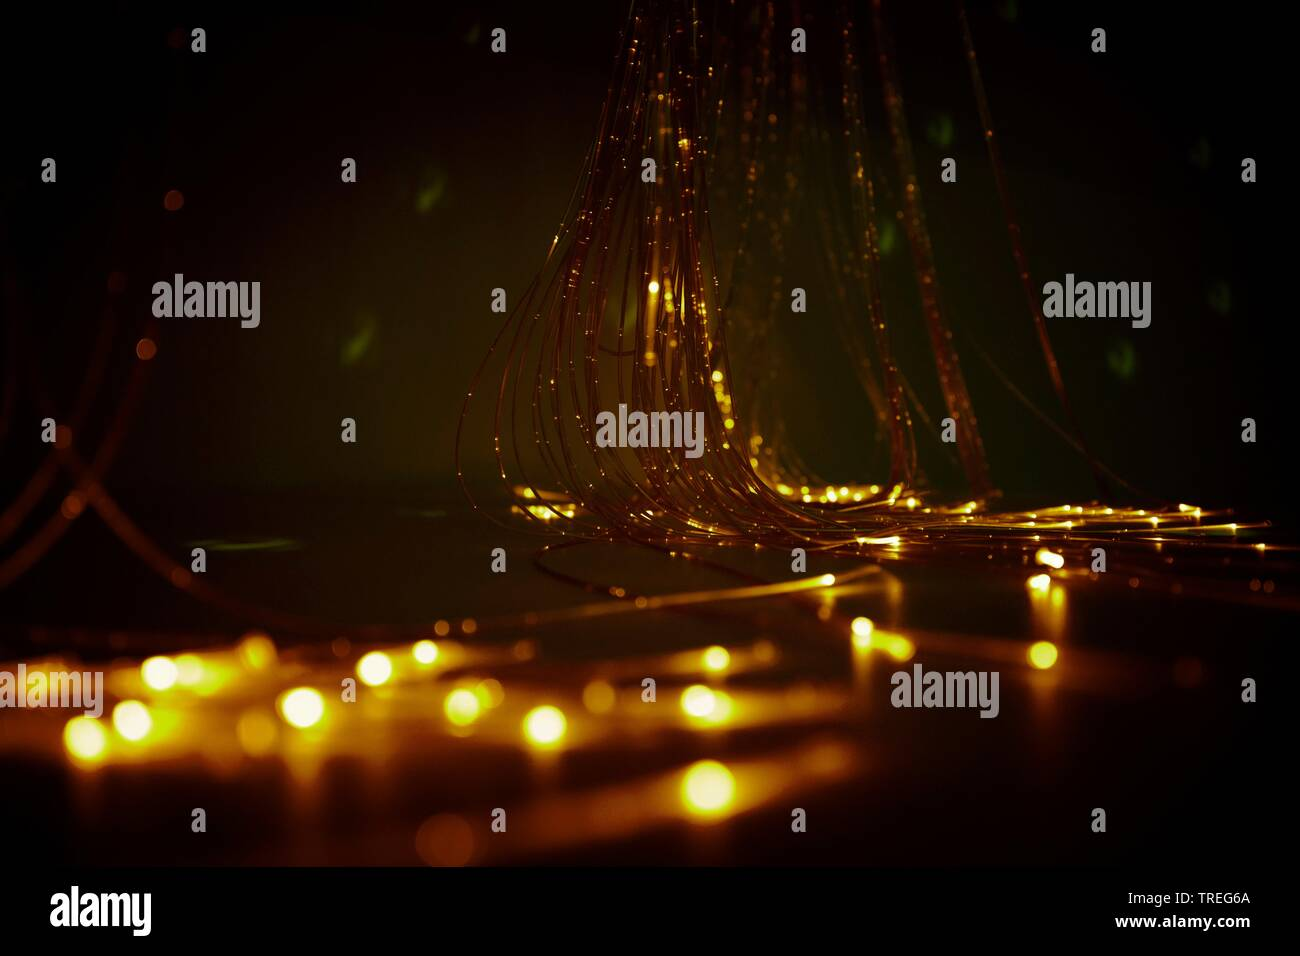 3D-Computergrafik, Glasfaserkabel in Gelbtoenen leuchtend - Lichtkunst | 3D computer graphic, fieber optic cables light up in yellow color - light art - Stock Image